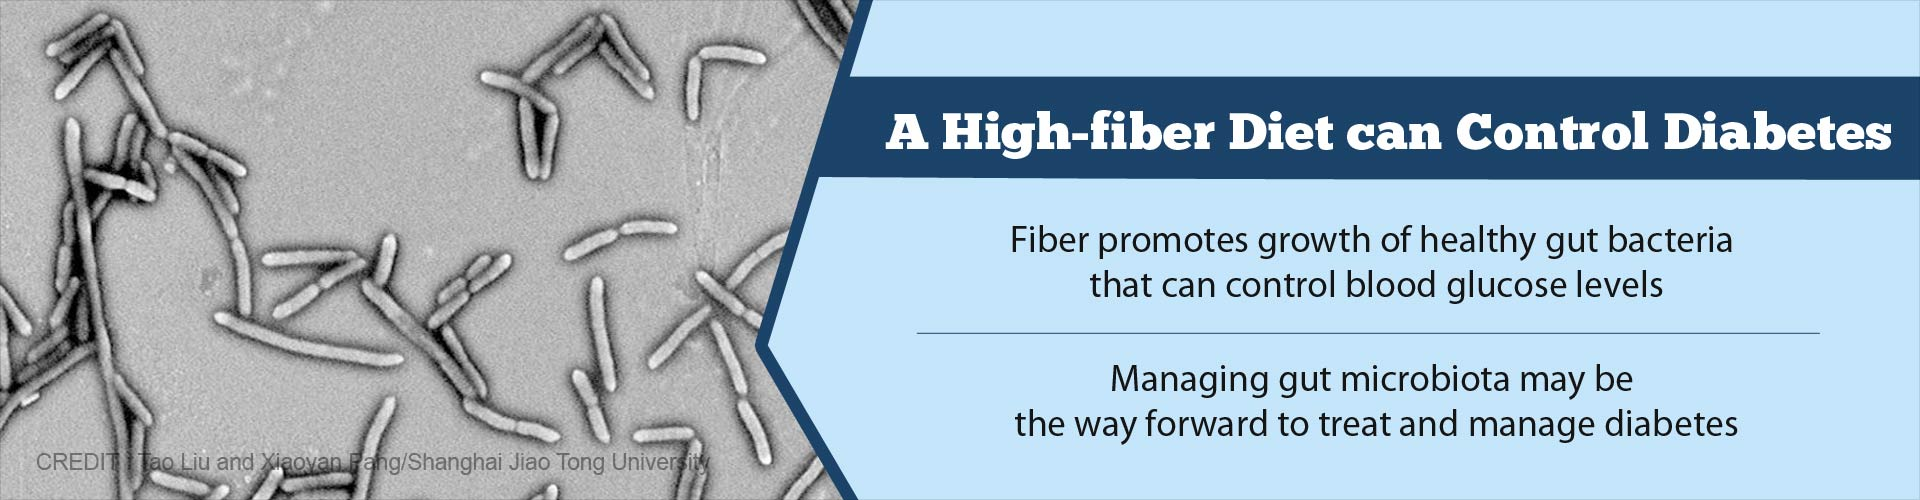 High-fiber Diet may Help Treat Type 2 Diabetes